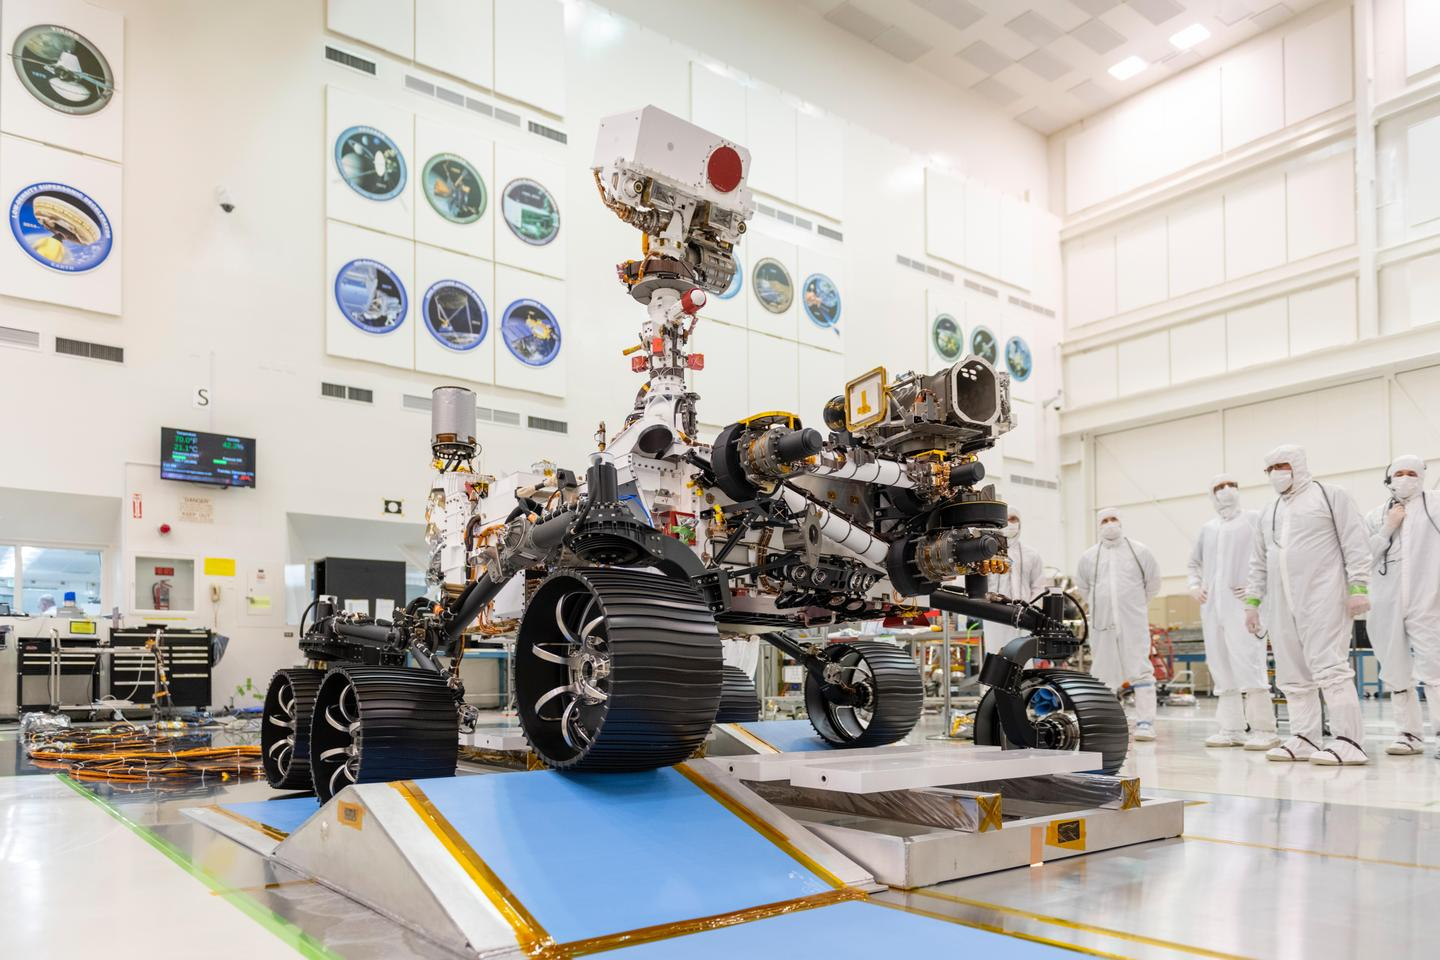 In a clean room at NASA's Jet Propulsion Laboratory in Pasadena, California, engineers observed the first driving test for NASA's Mars 2020 rover